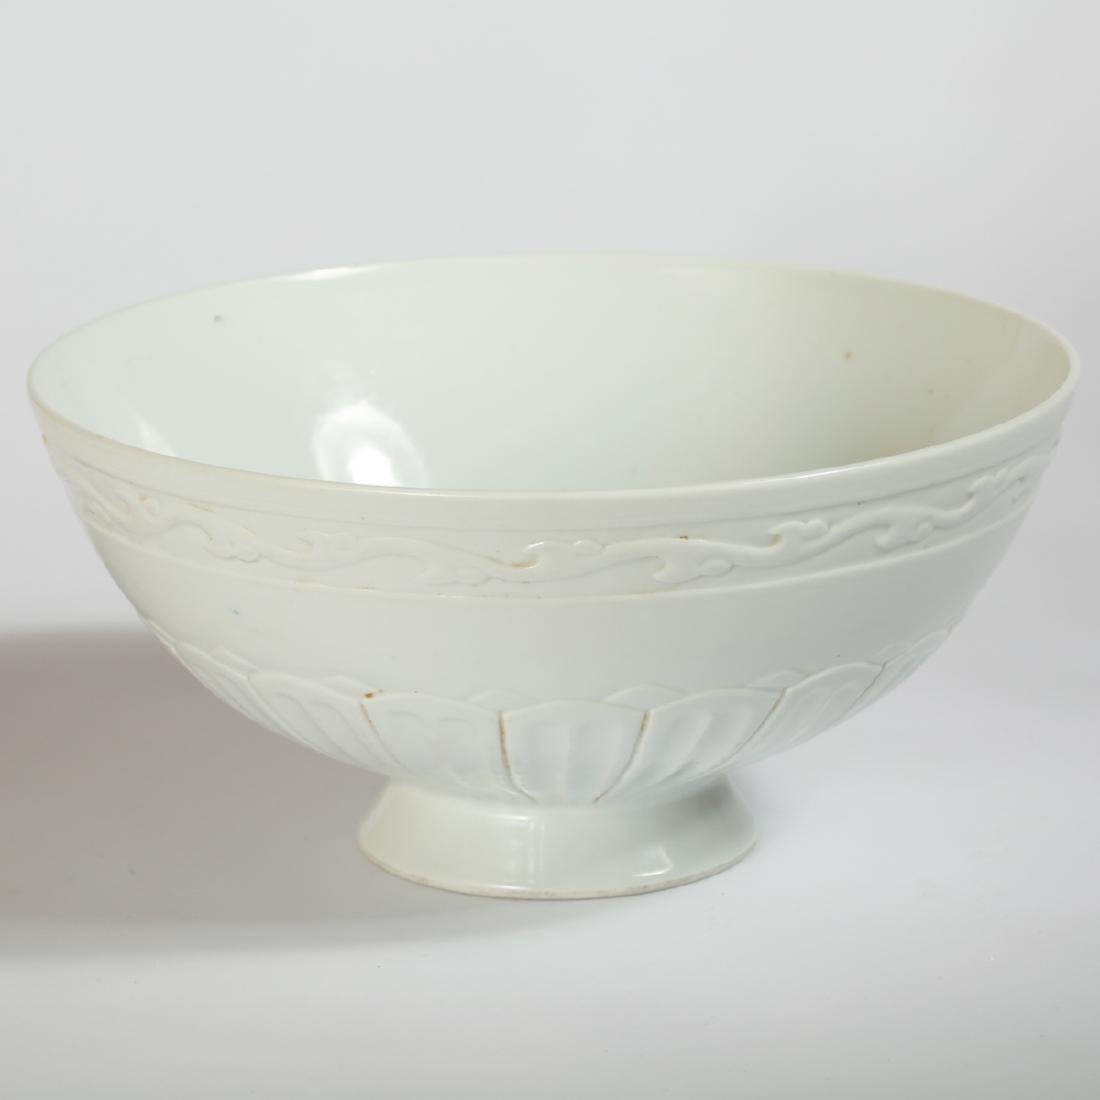 CHINESE WHITE GLAZED ANHUA BOWL